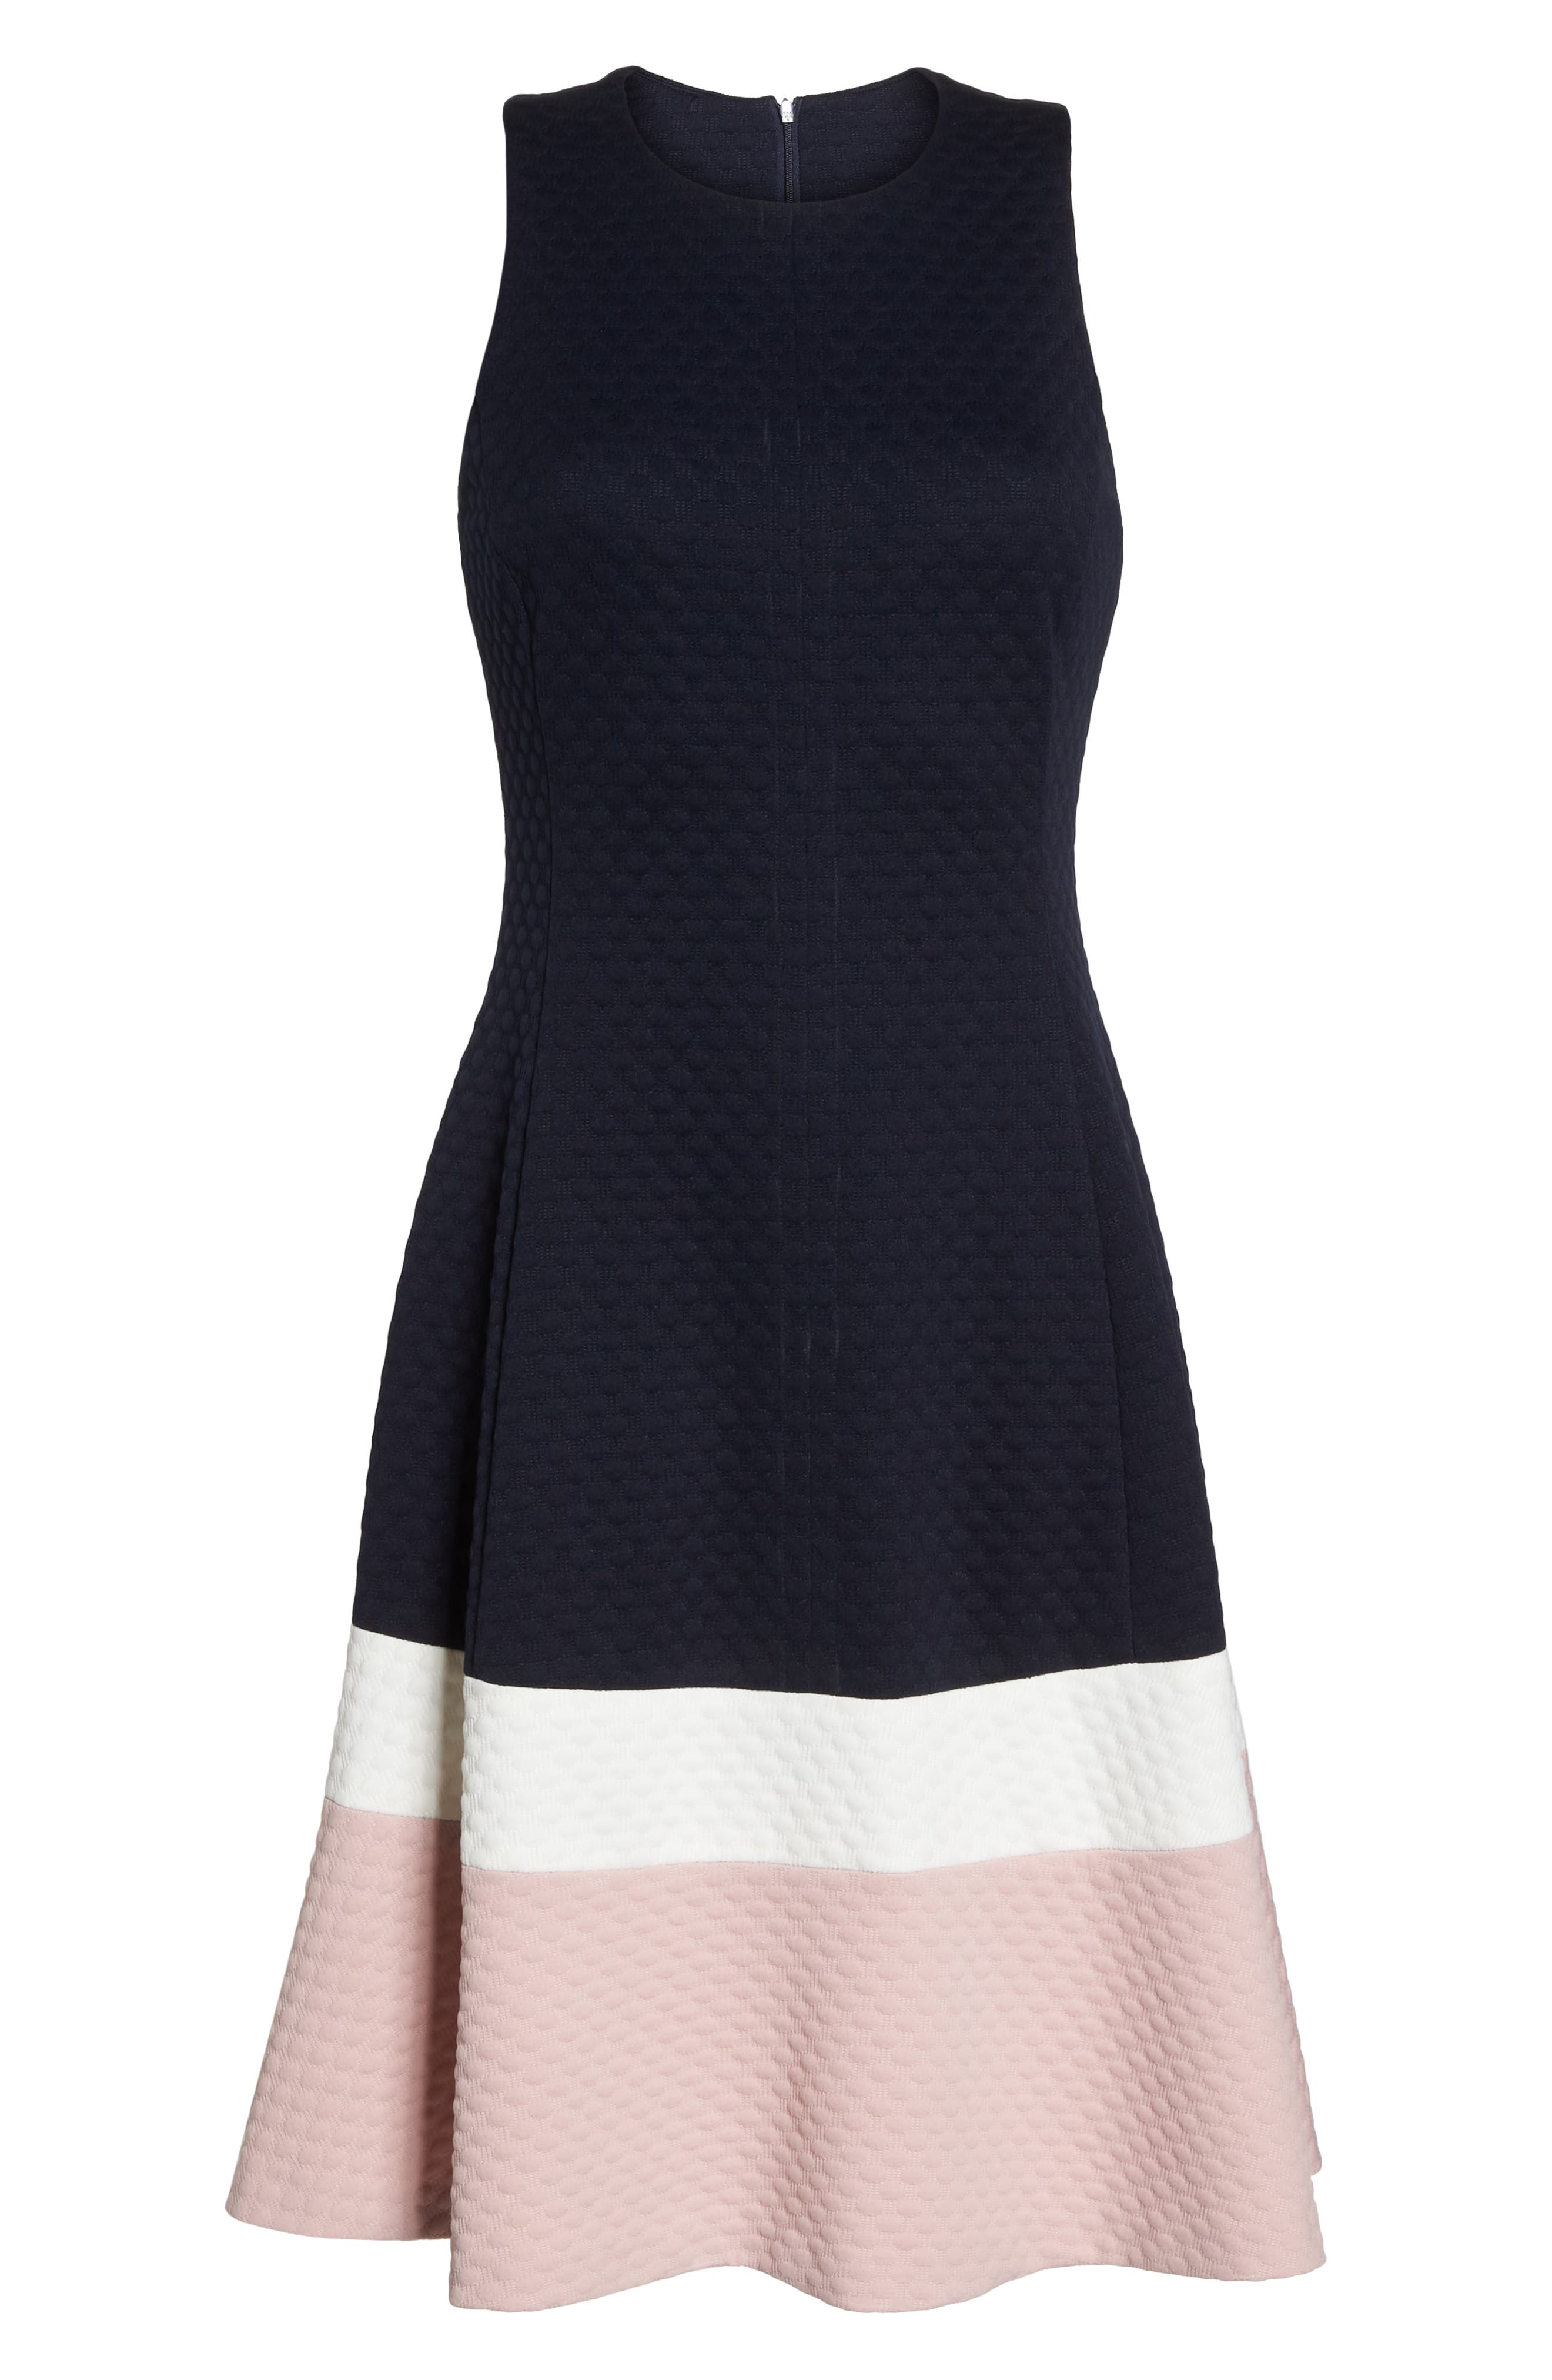 Colorblock Texture Knit Fit & Flare Dress,                             Alternate thumbnail 7, color,                             NAVY/ IVORY/ BLUSH